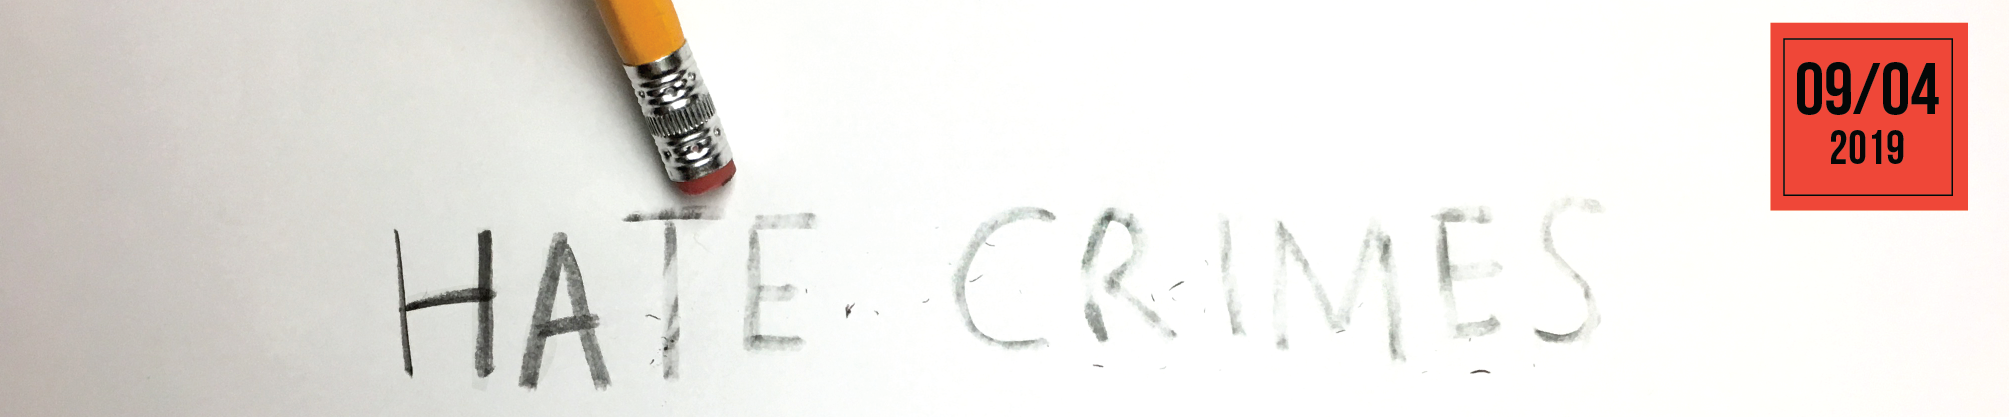 banner_HC-04-04.png